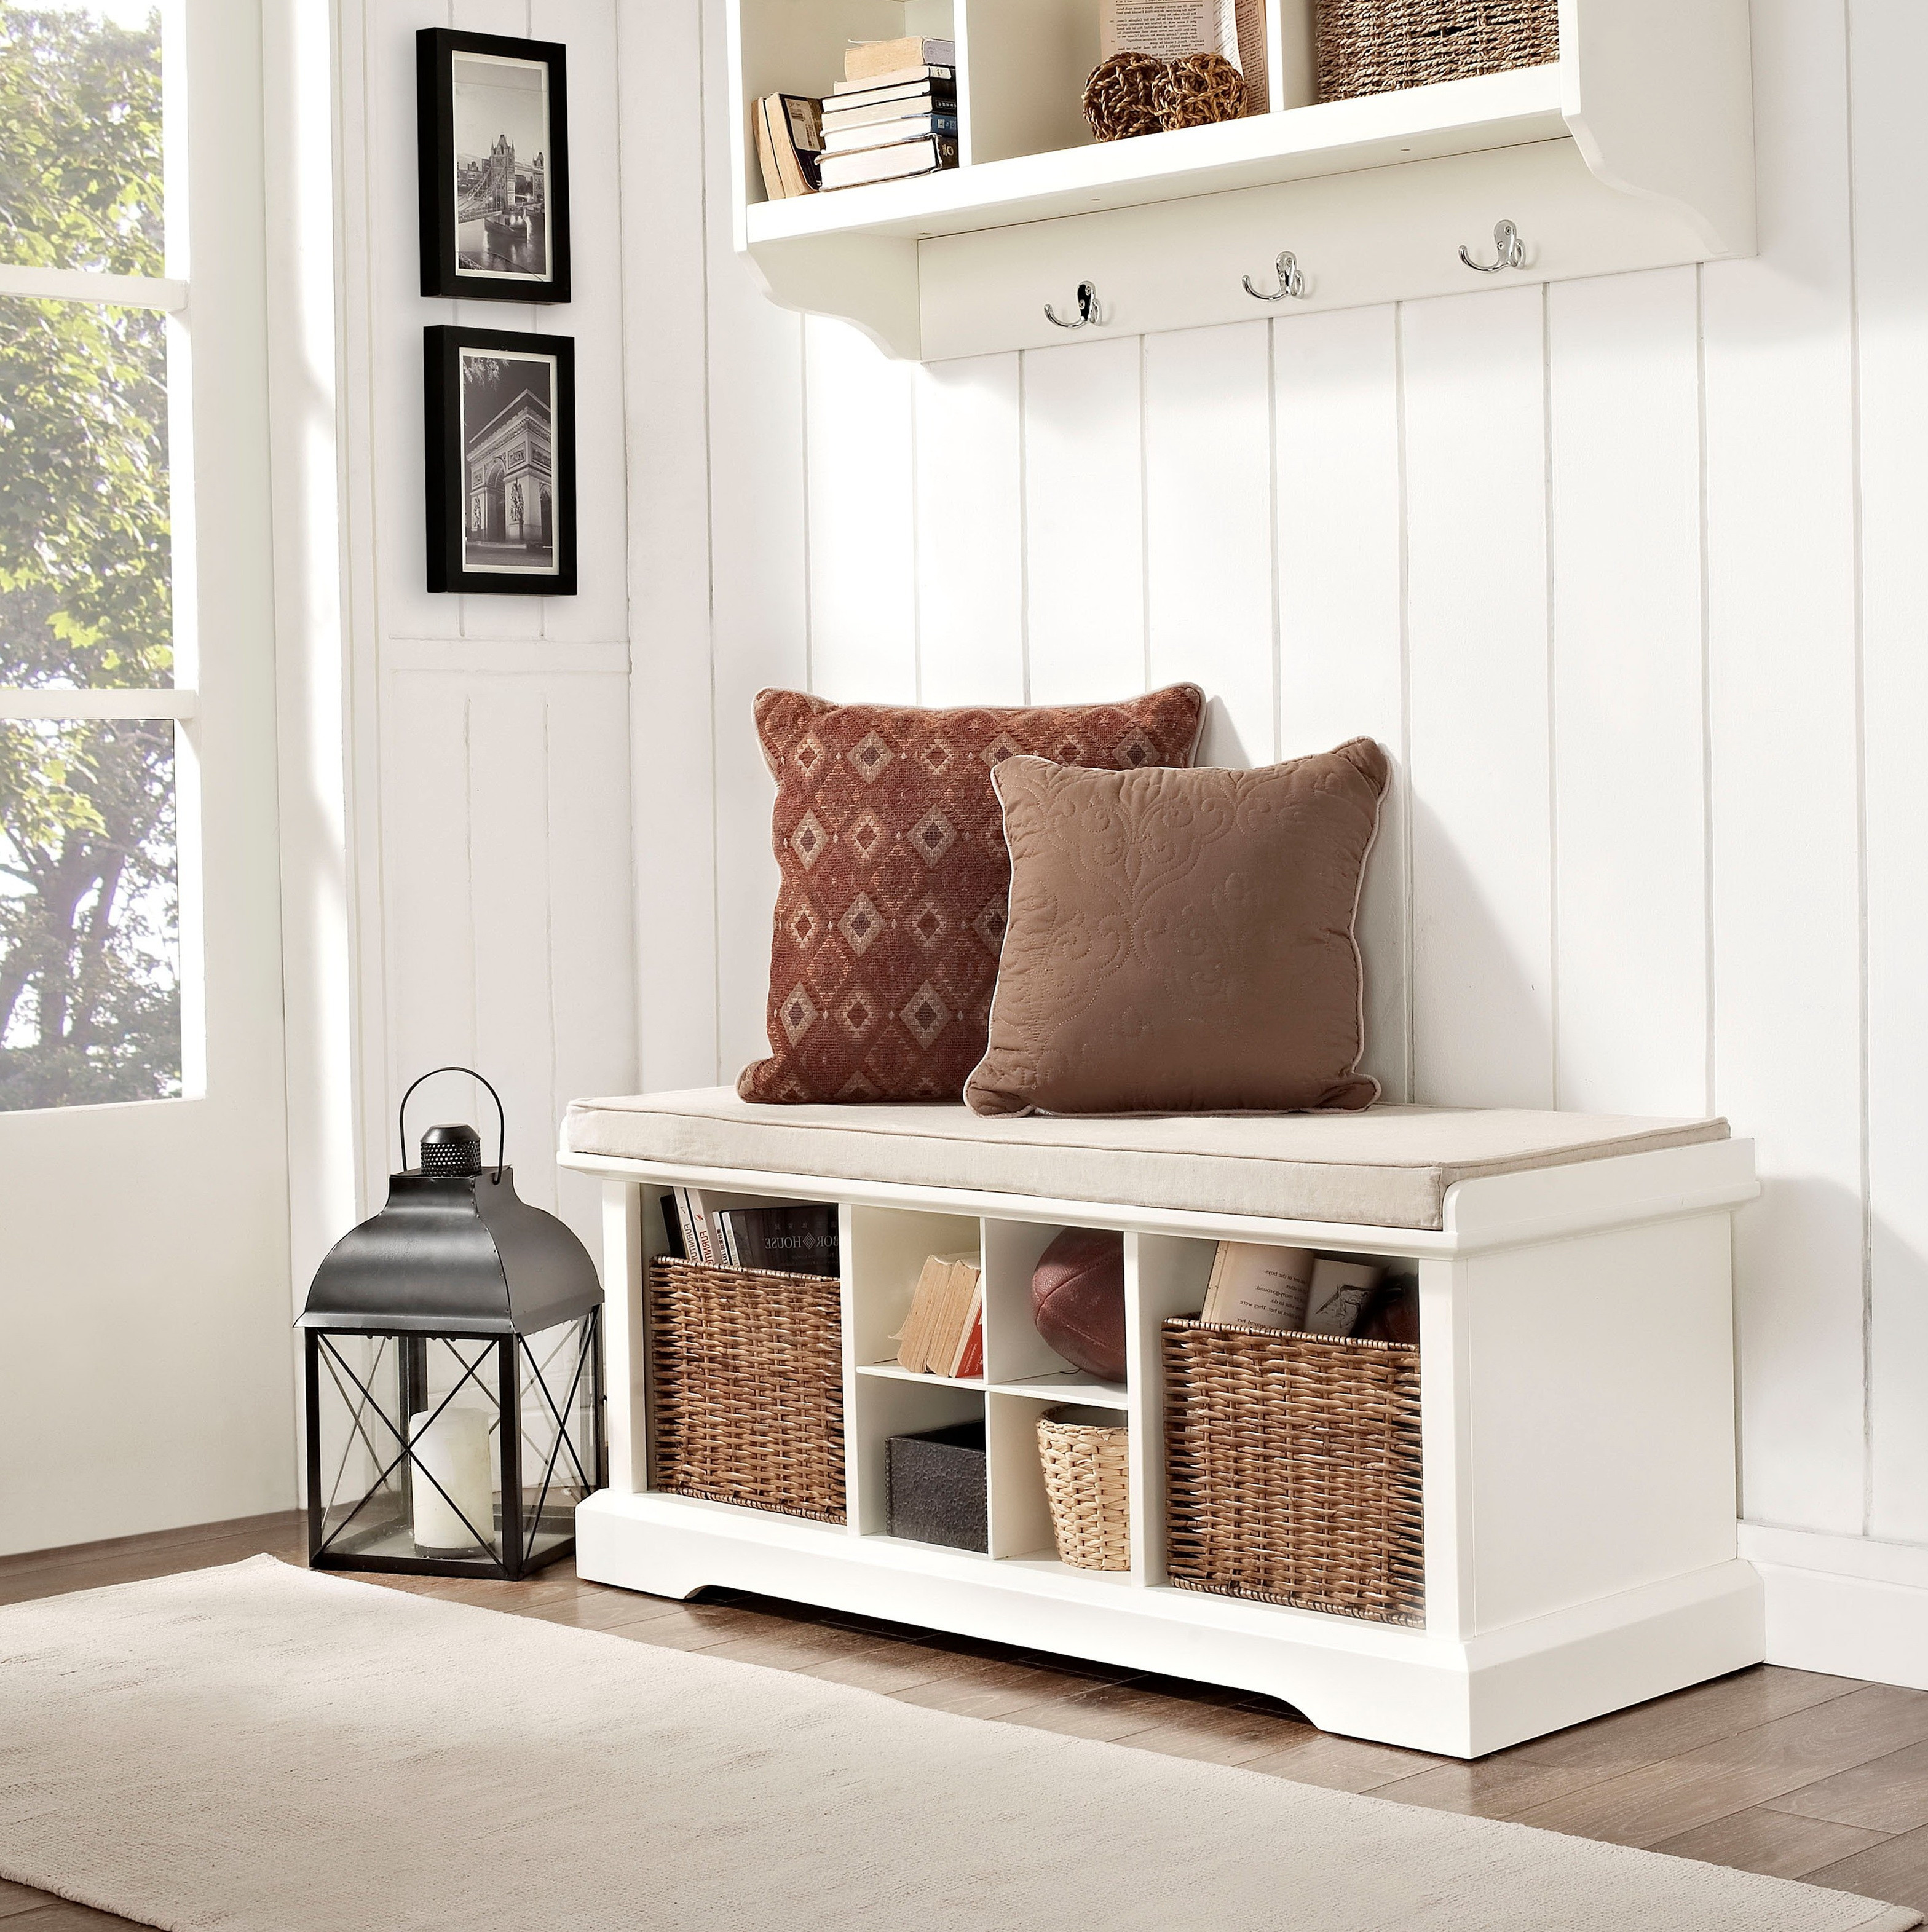 Best ideas about White Entryway Bench . Save or Pin White Storage Bench With Cubbies Now.